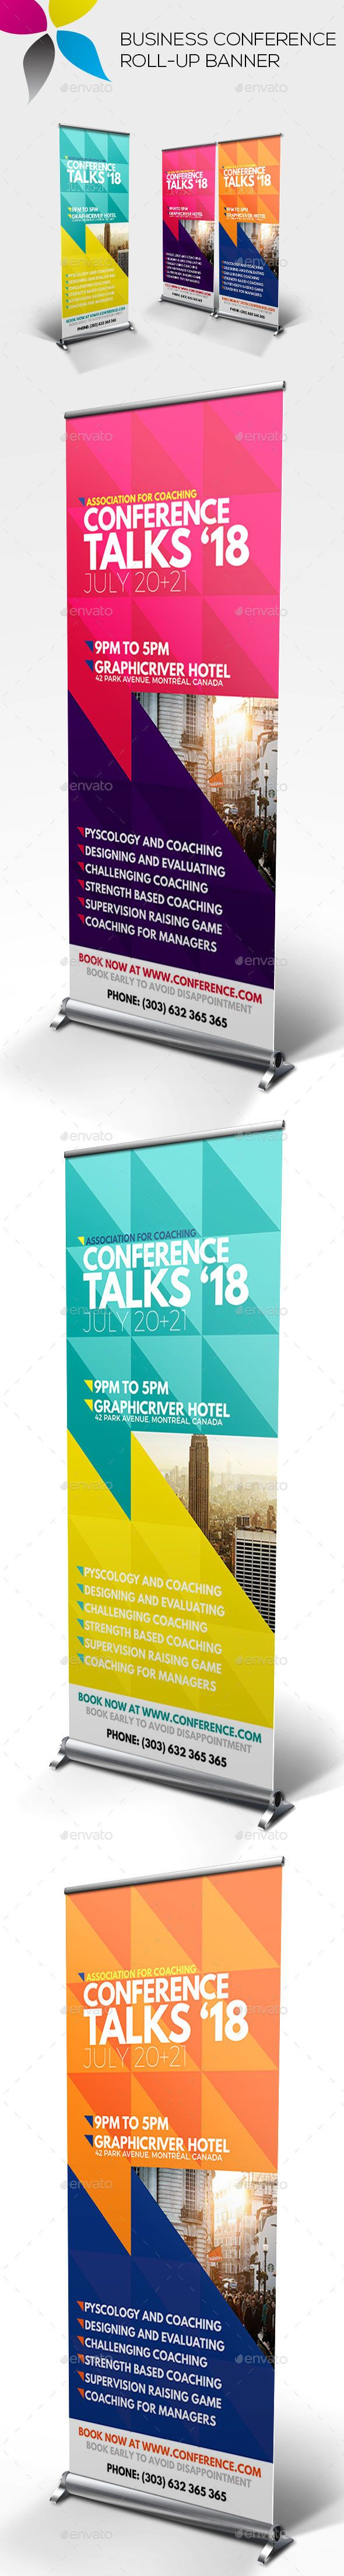 Business Conference Roll-up Banner Design Template - Signage Ads Banner Print Template PSD. Download here: https://graphicriver.net/item/business-conference-rollup-banner/19318286?ref=yinkira